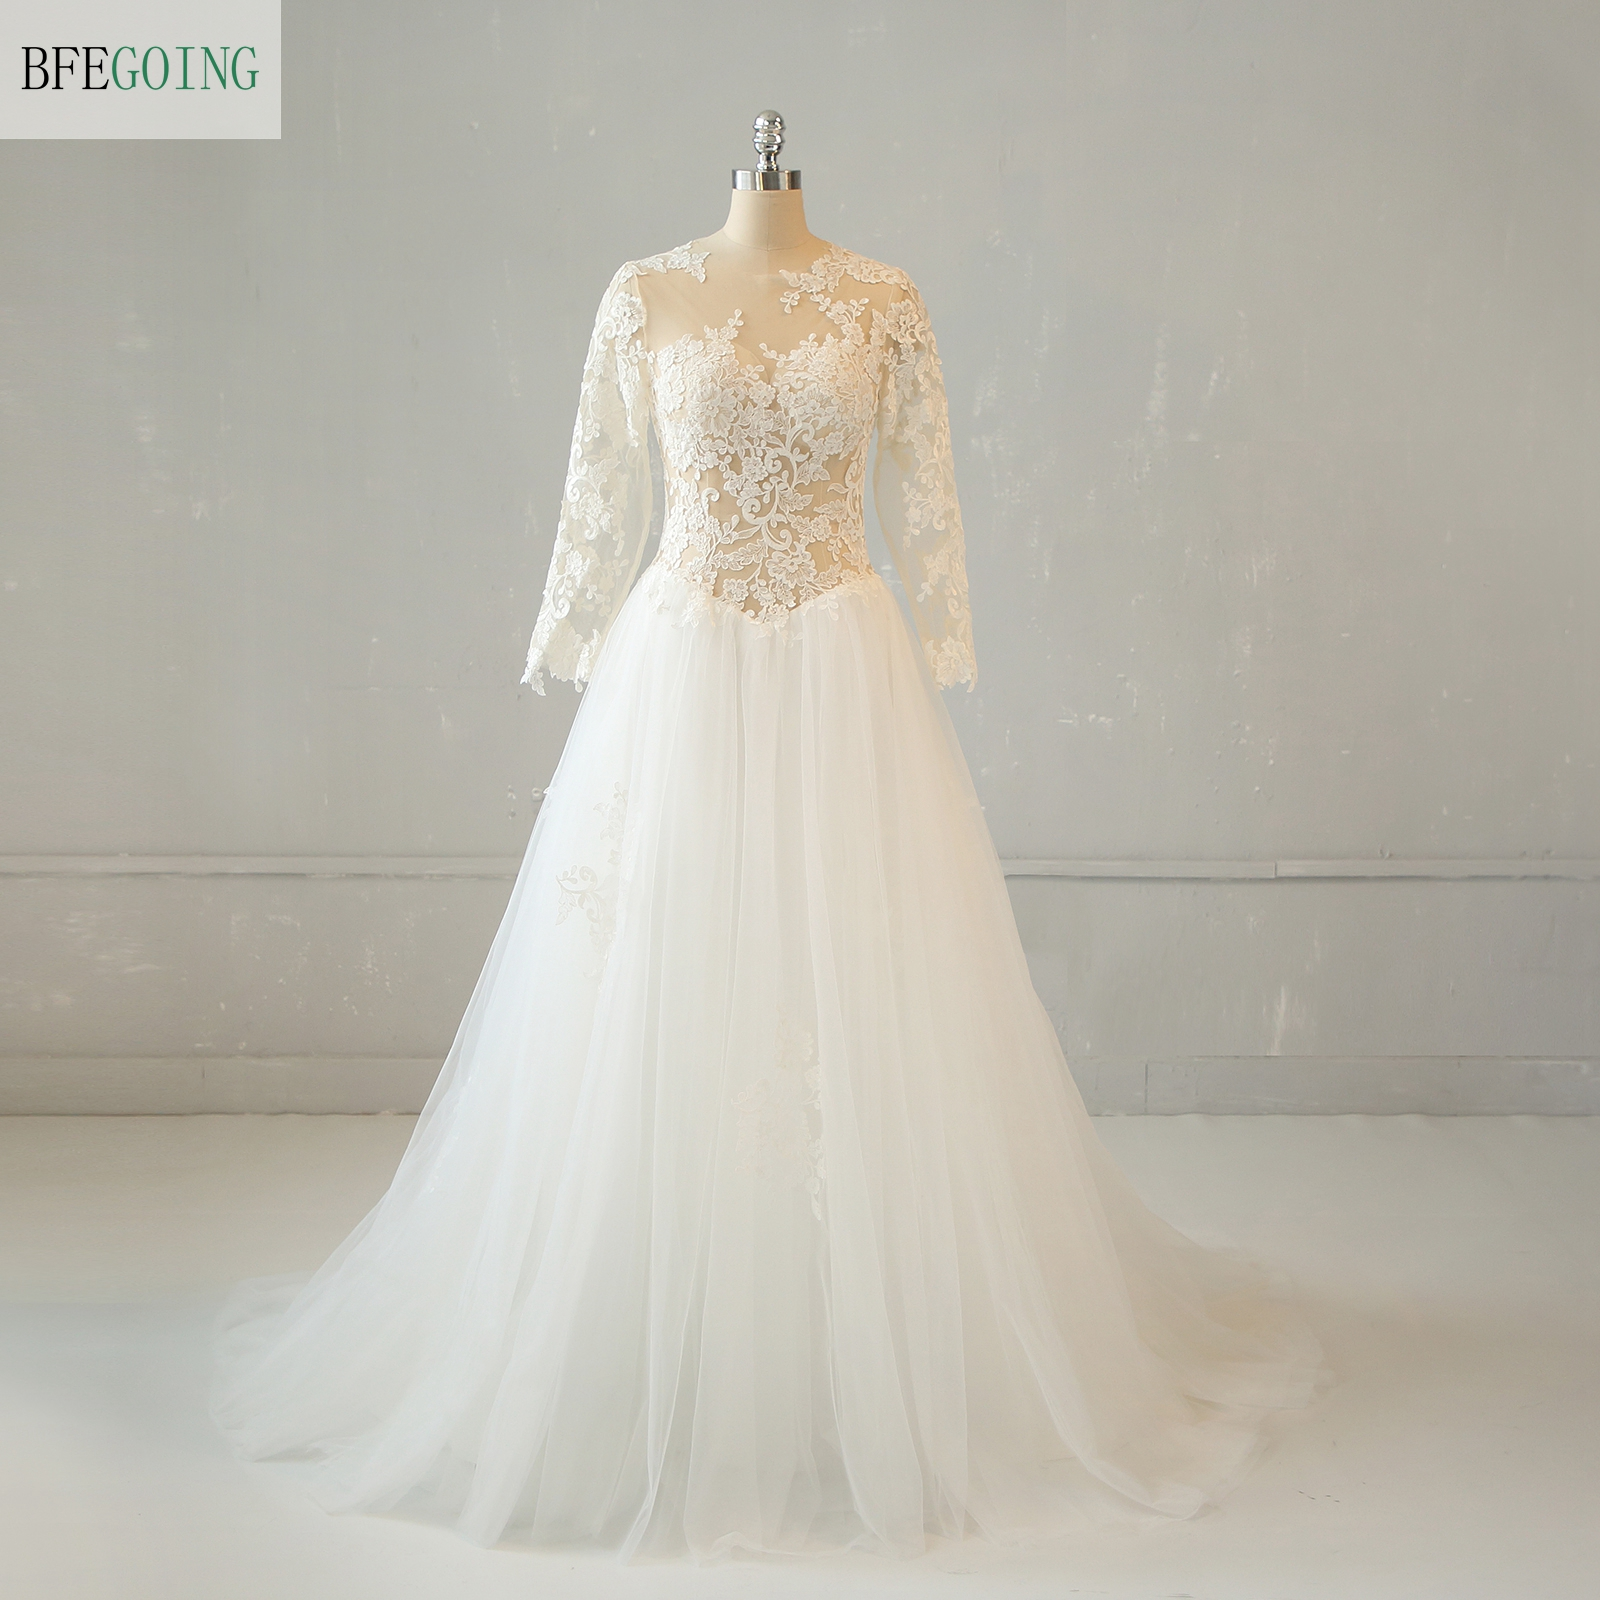 Ivory Tulle Lace Appliques Long Sleeves Floor-length A-line Wedding Gown Bridal Dress Chapel Train Custom Made